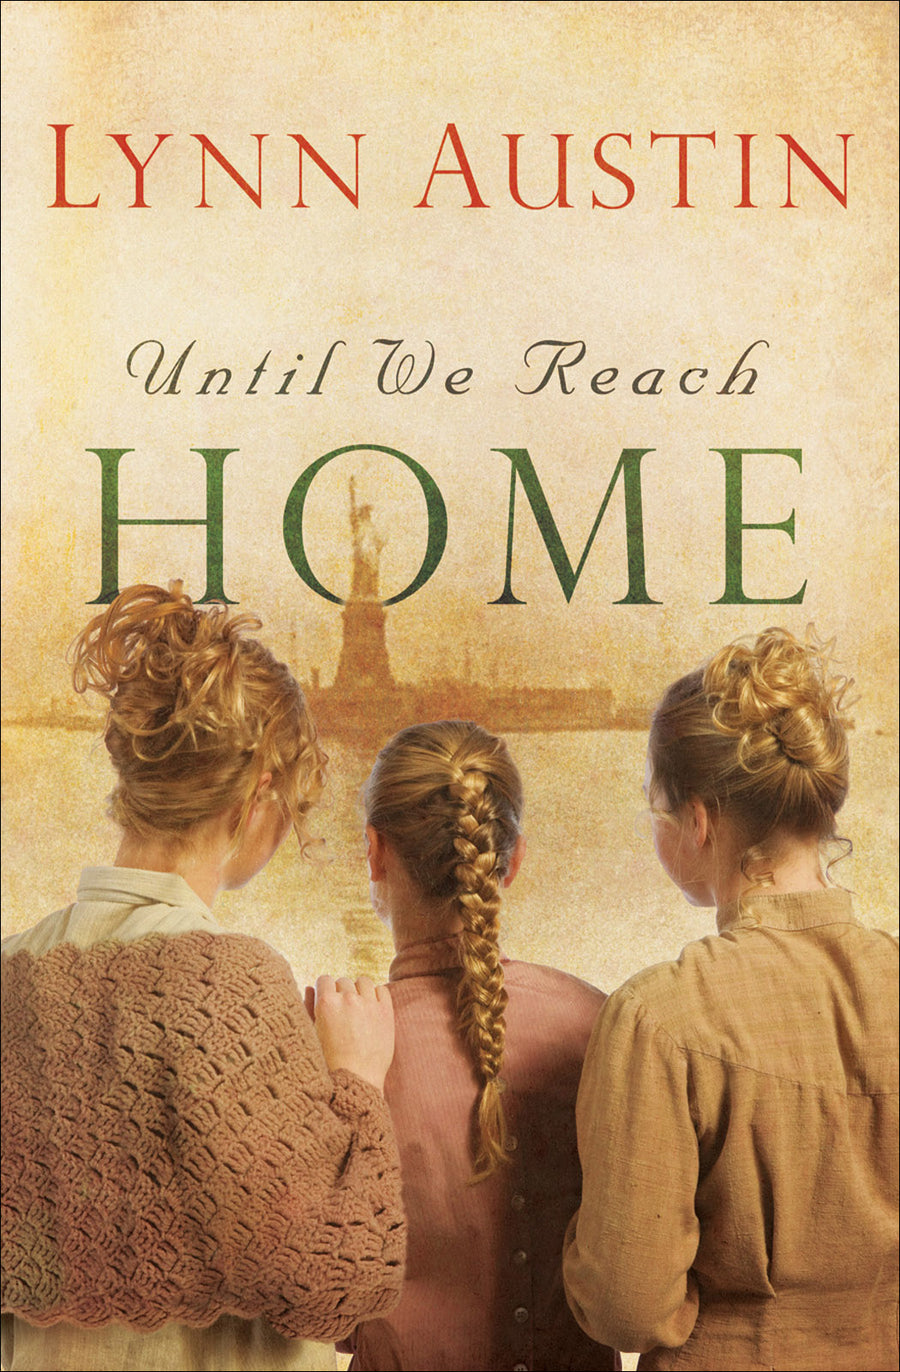 Virtual Event - Lynn Austin, Until We Reach Home - October 20, 2020 - 7pm EDT